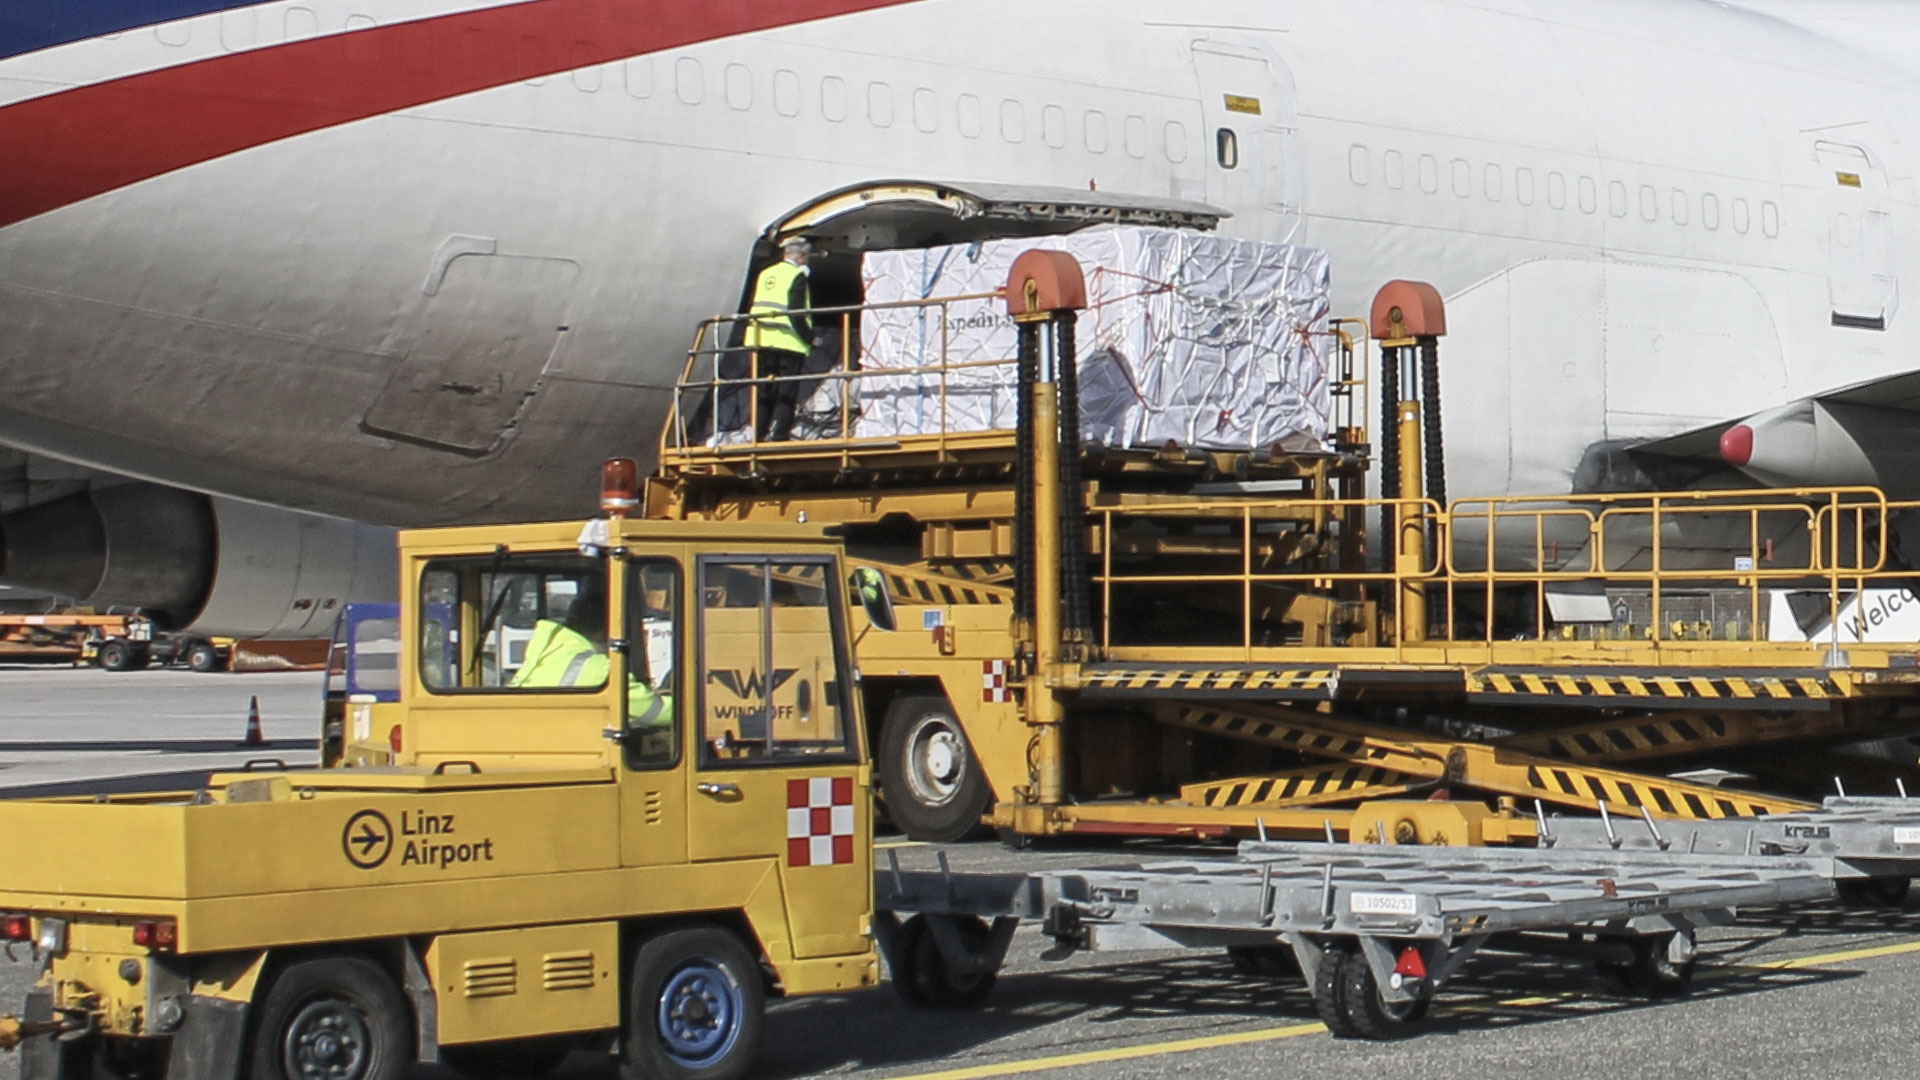 People working around a cargo plane